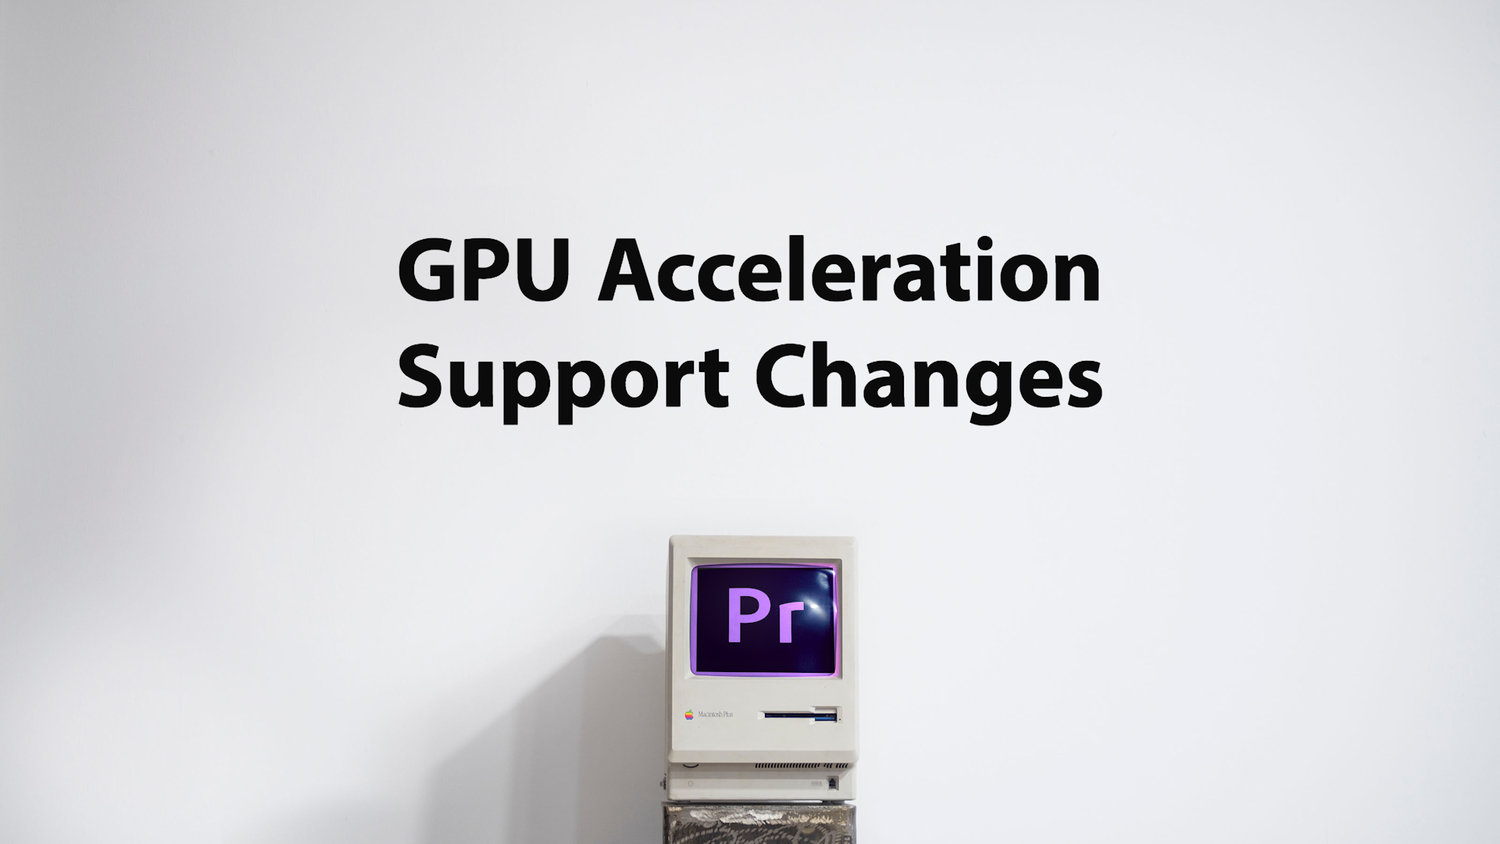 Support Changes for GPU Acceleration Coming to Premiere Pro - Adobe announces support changes for CUDA and apple metal in future release in Premiere Pro.